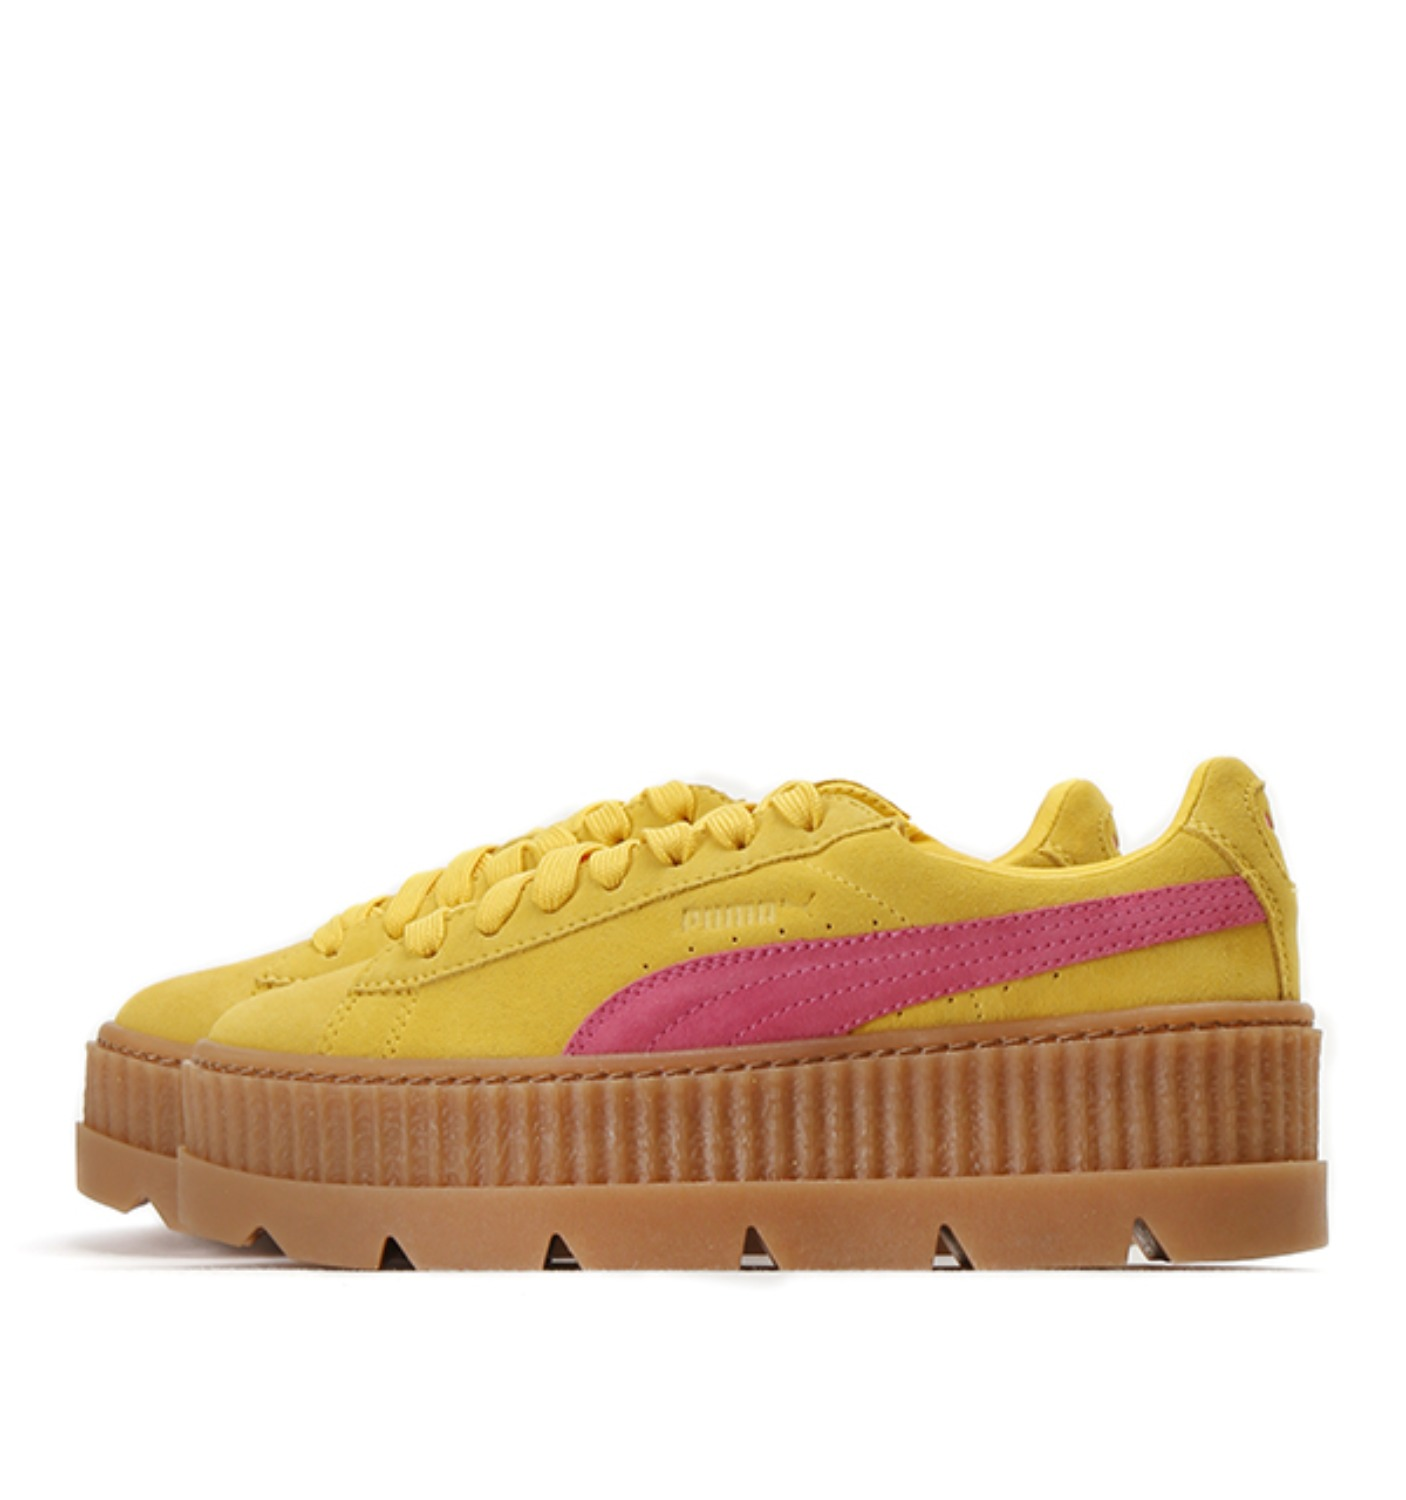 CLEATED CREEPER SUEDE LEMON (366268/03)